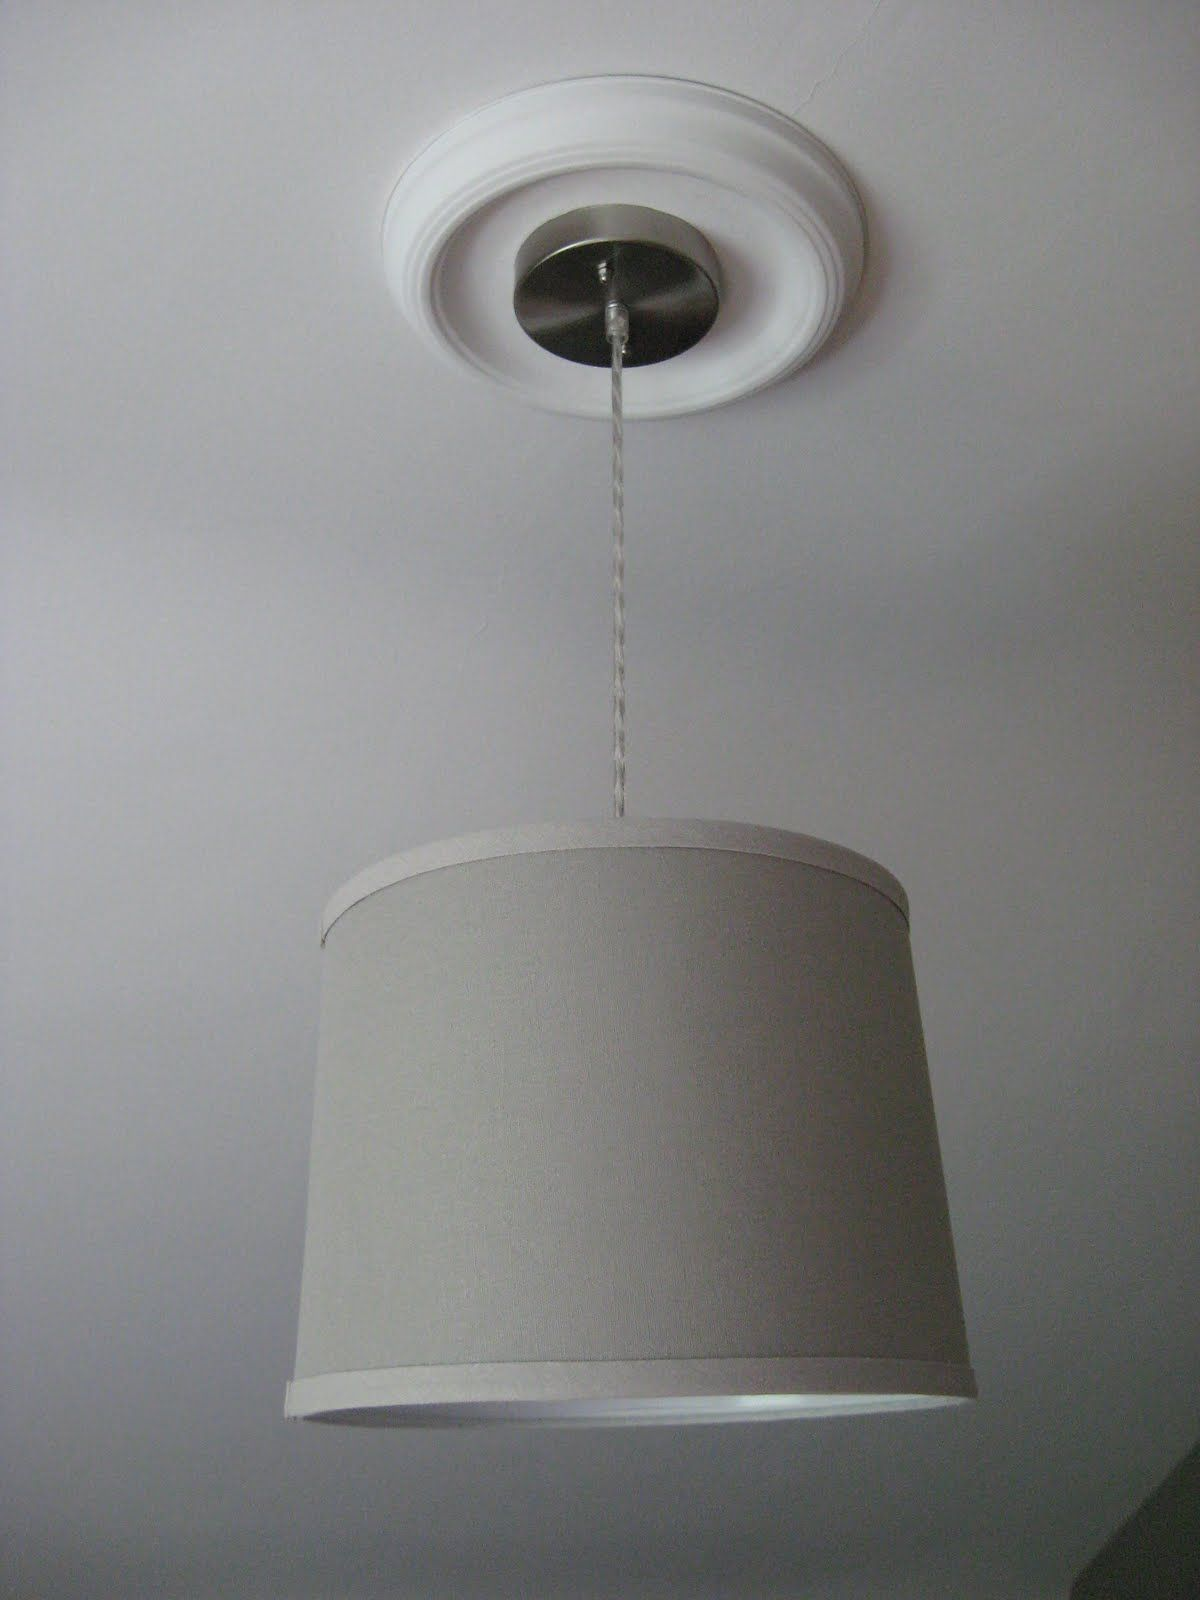 to box gettyimages holes medallions cover ceilingmedallion light ceiling around a medallion